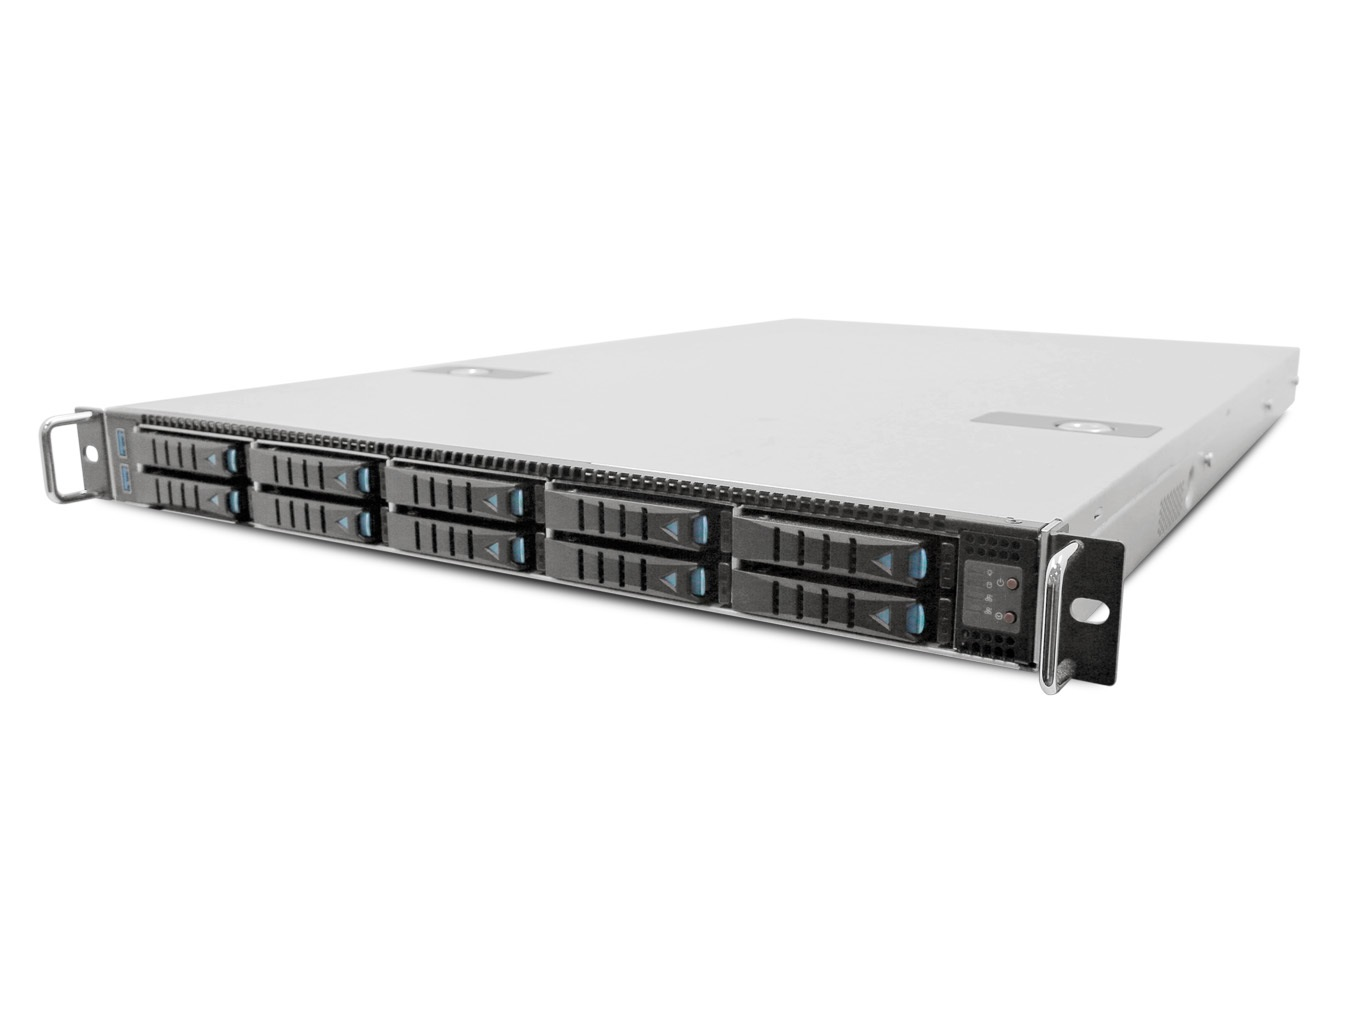 AIC RSC-1AT XE1-1AT00-02 1U SAS/SATA Storage Server Chassis